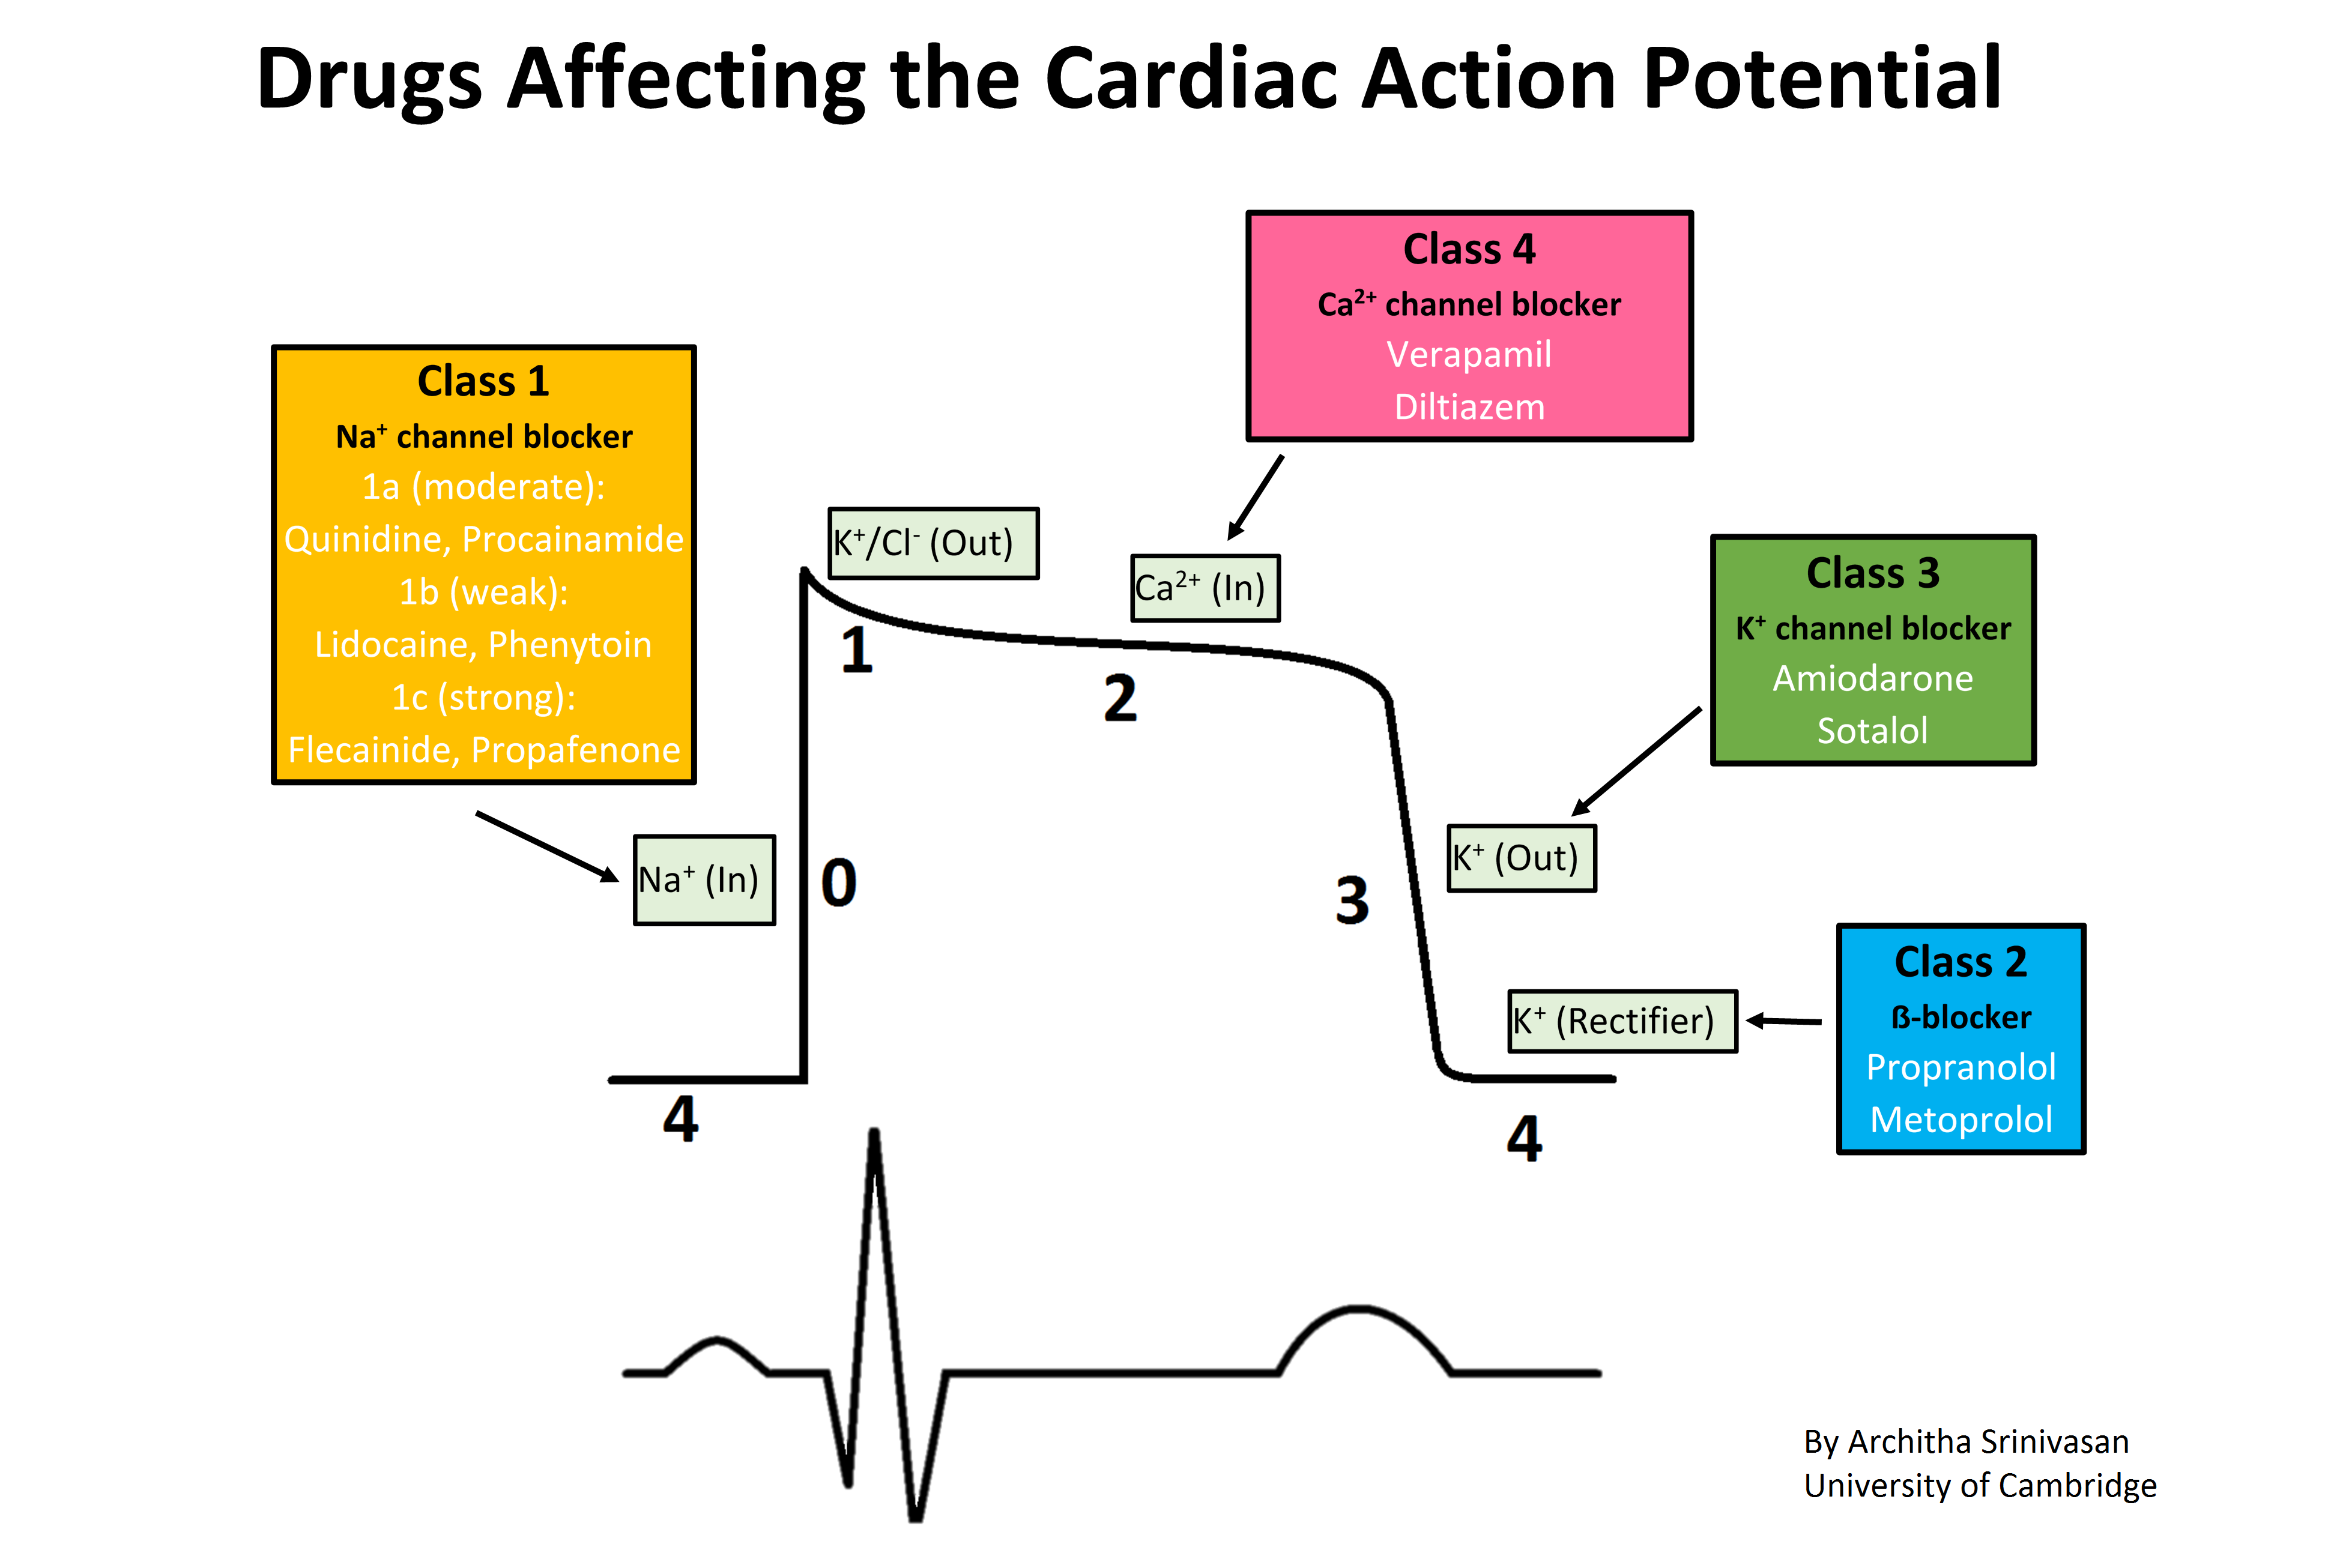 Action Potential Png - File:Cardiac action potential.png - Wikimedia Commons